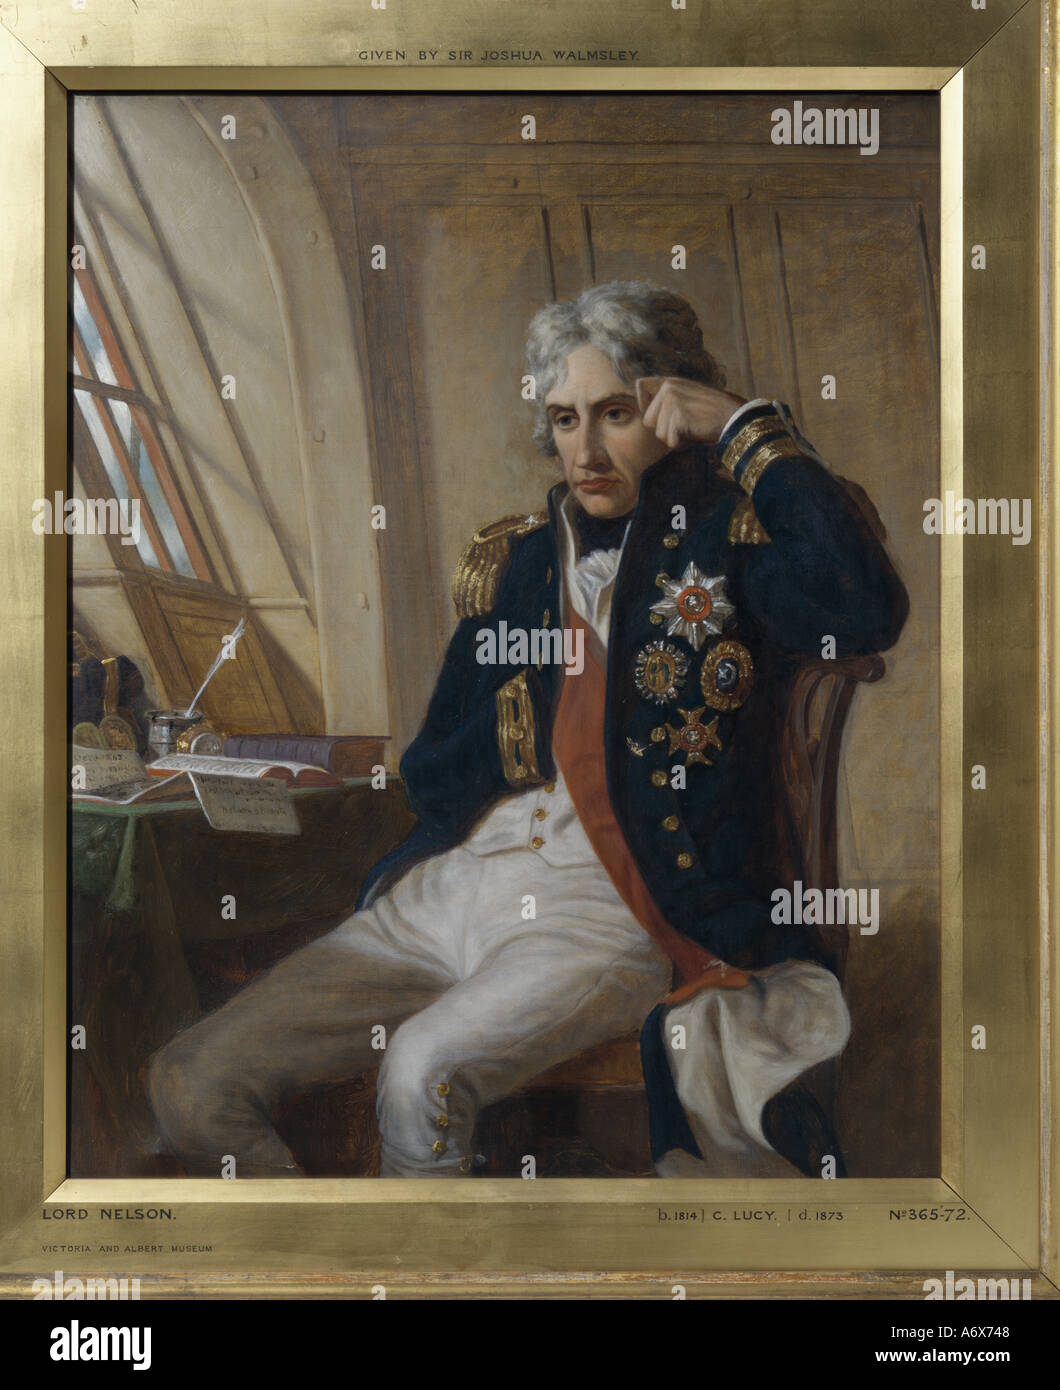 Vice Admiral Lord Nelson by Charles Lucy. Great Britian, 19th century. - Stock Image